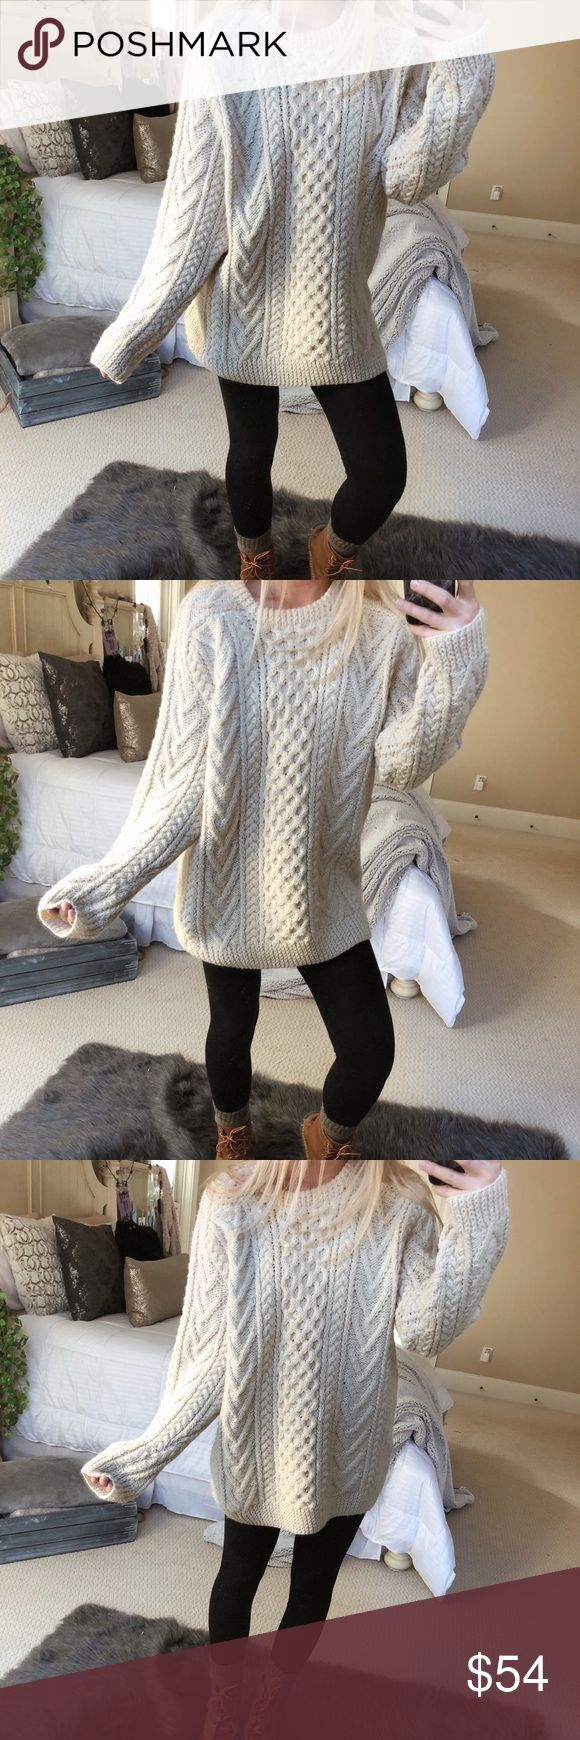 chunky cream knit sweater gorgeous creamy-off white chunky hand knitted sweater. so incredible and luxurious 🍃🍂 fits a size medium or large 🌲☕️ — * all offers 100% welcomed + encouraged * bundle for a private discount of at least 20% off  * orders guaranteed to ship within 1-2 days unless stated otherwise * ask me any questions if you ever have any! xo Sweaters